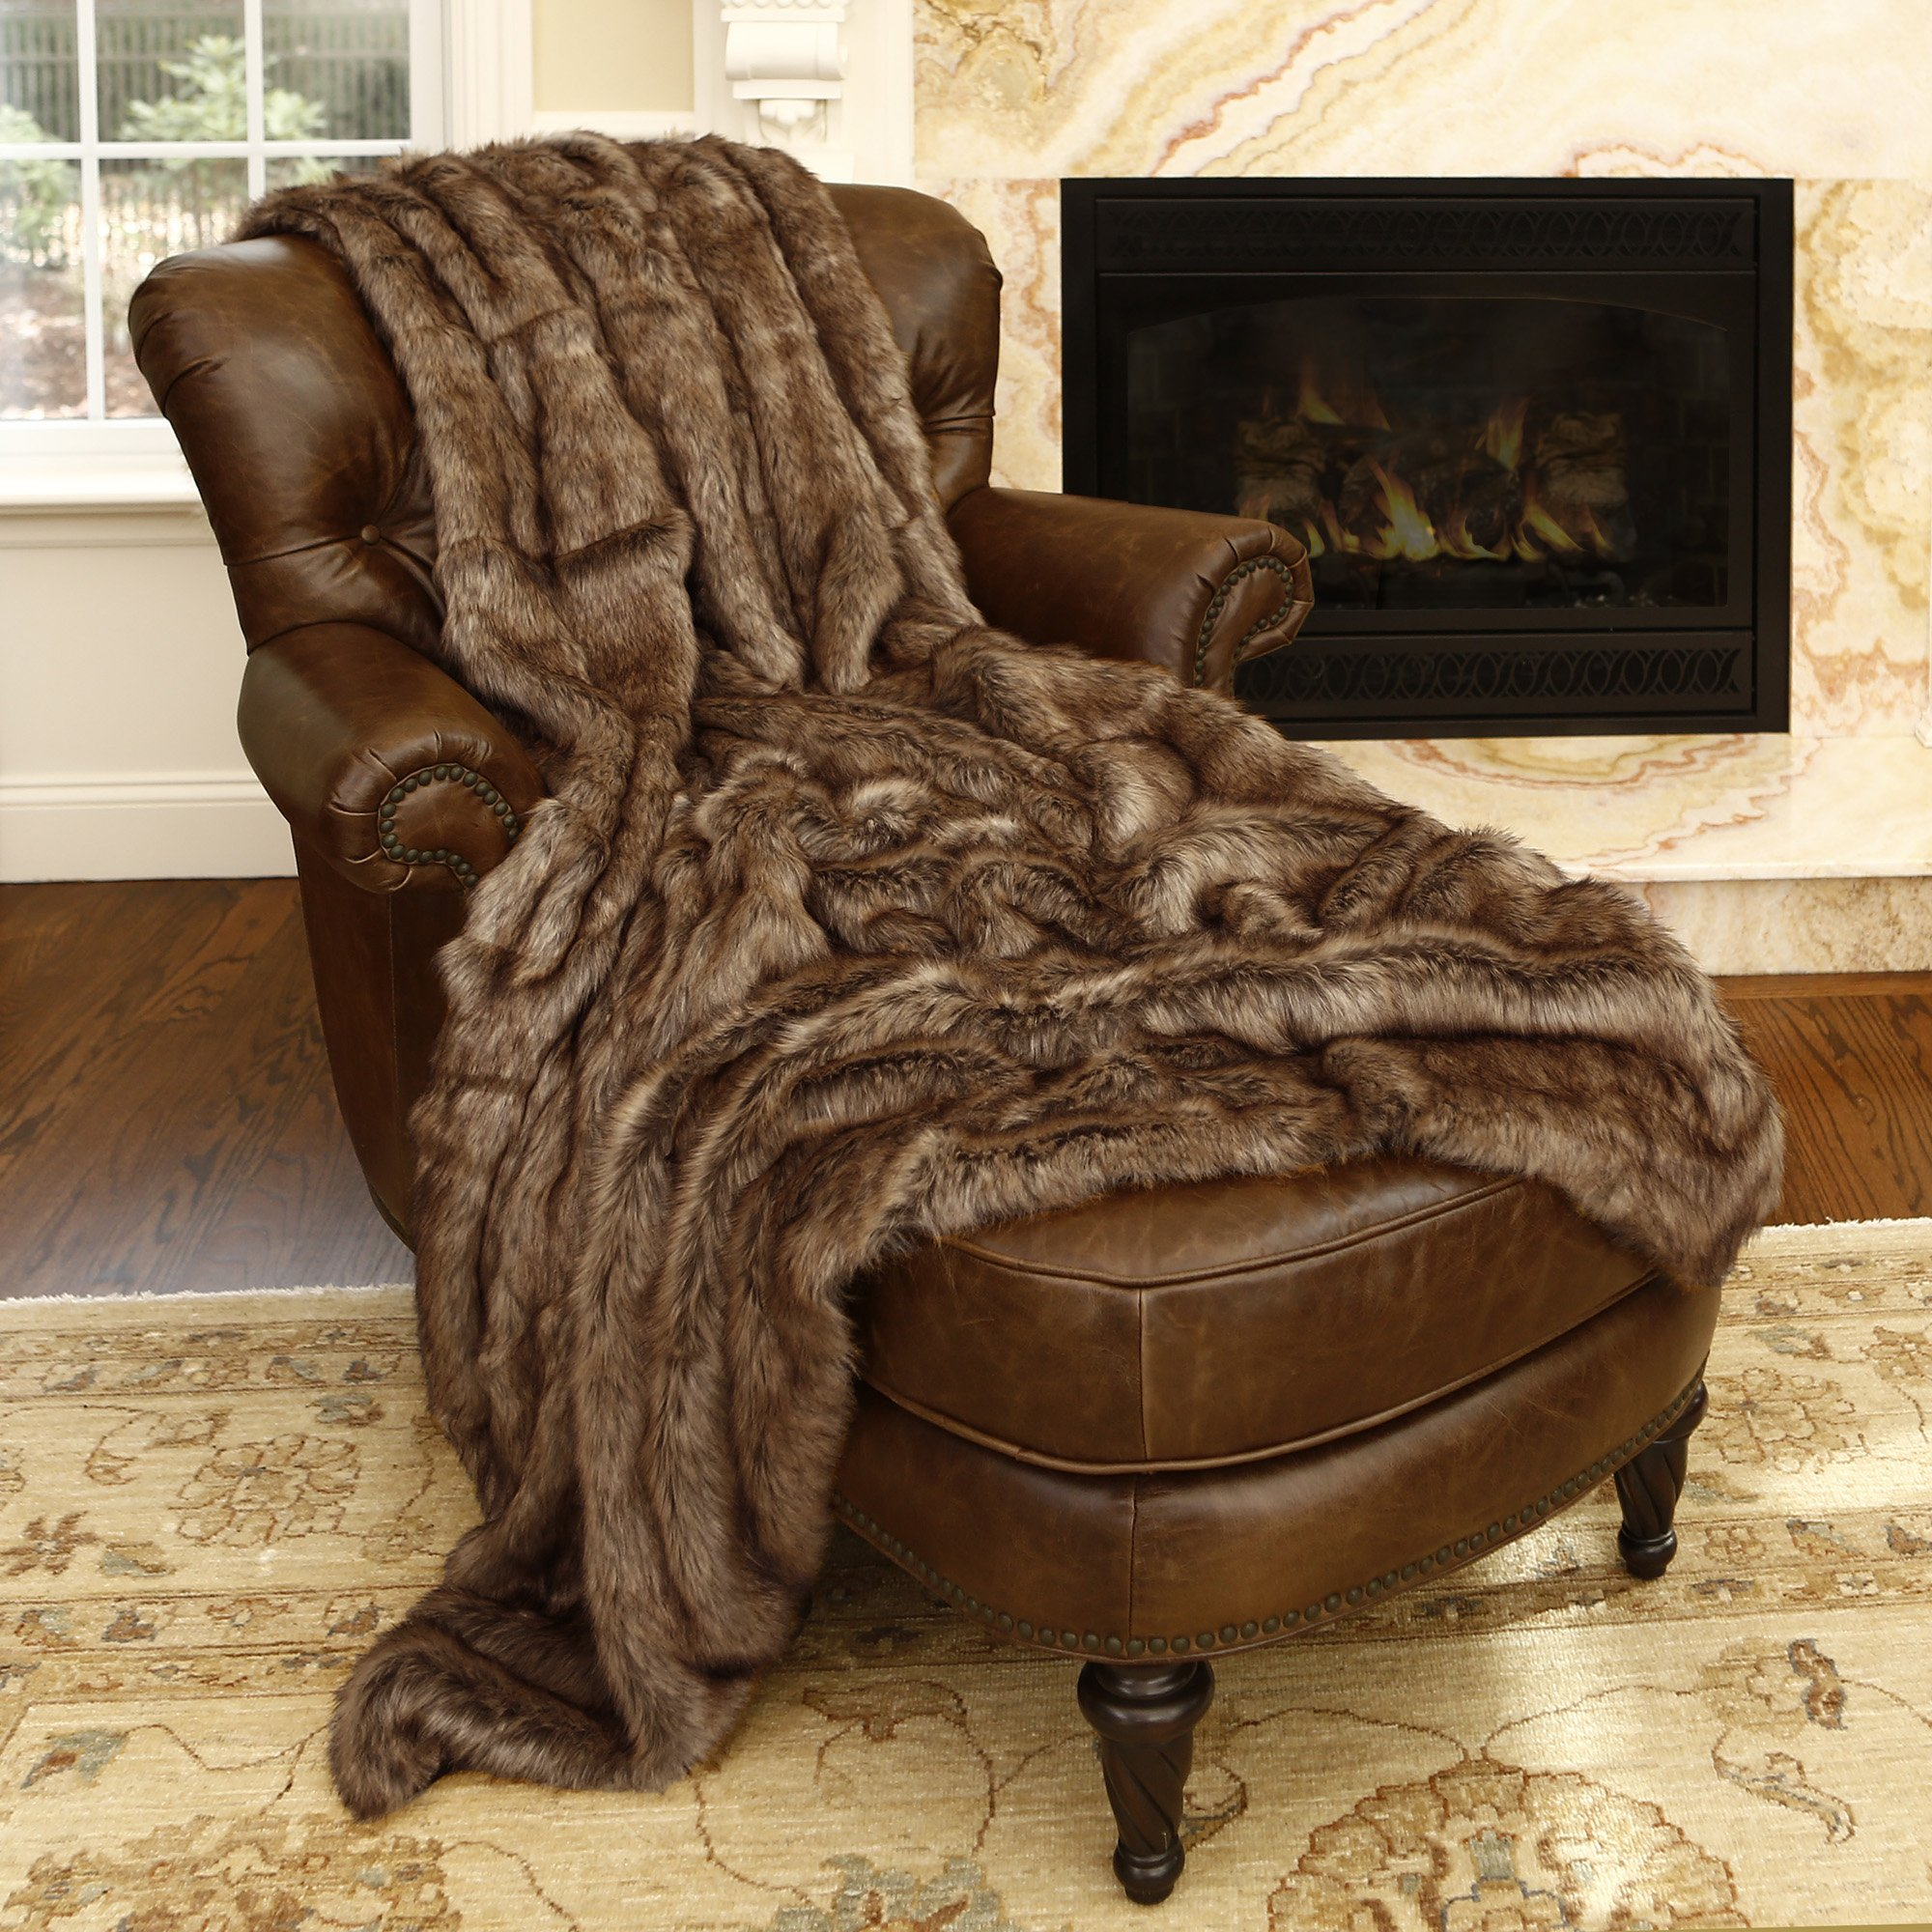 Best Home Fashion Faux Fur Throw - Full Blanket - Coyote - 58''W x 84''L - (1 Throw) by Best Home Fashion